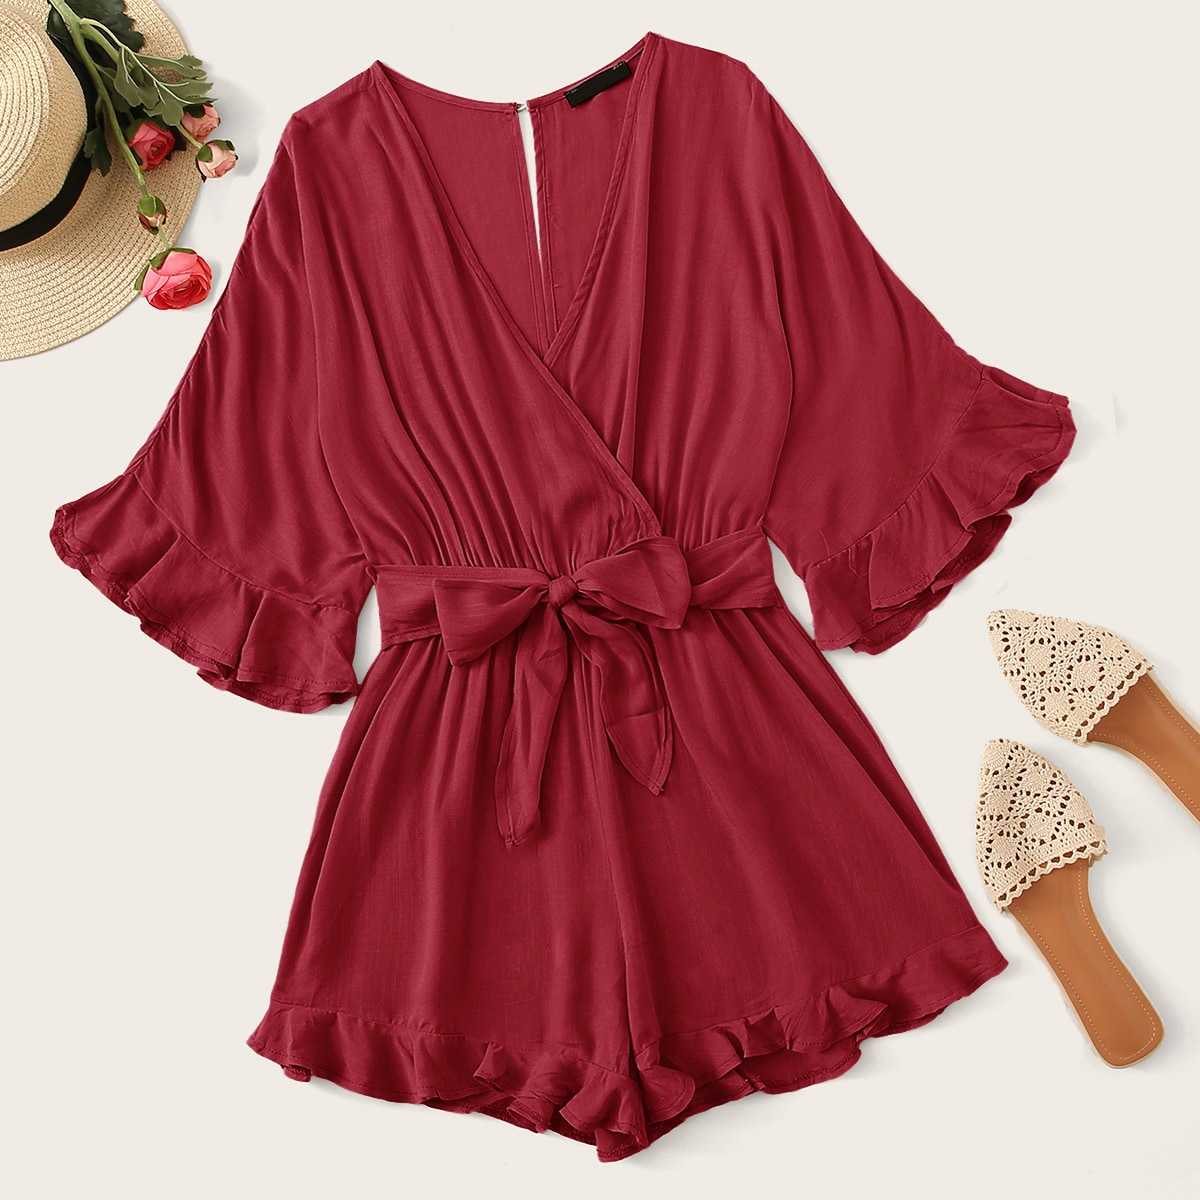 Cut-out Back Ruffle Trim Surplice Neck Belted Romper in Burgundy by ROMWE on GOOFASH